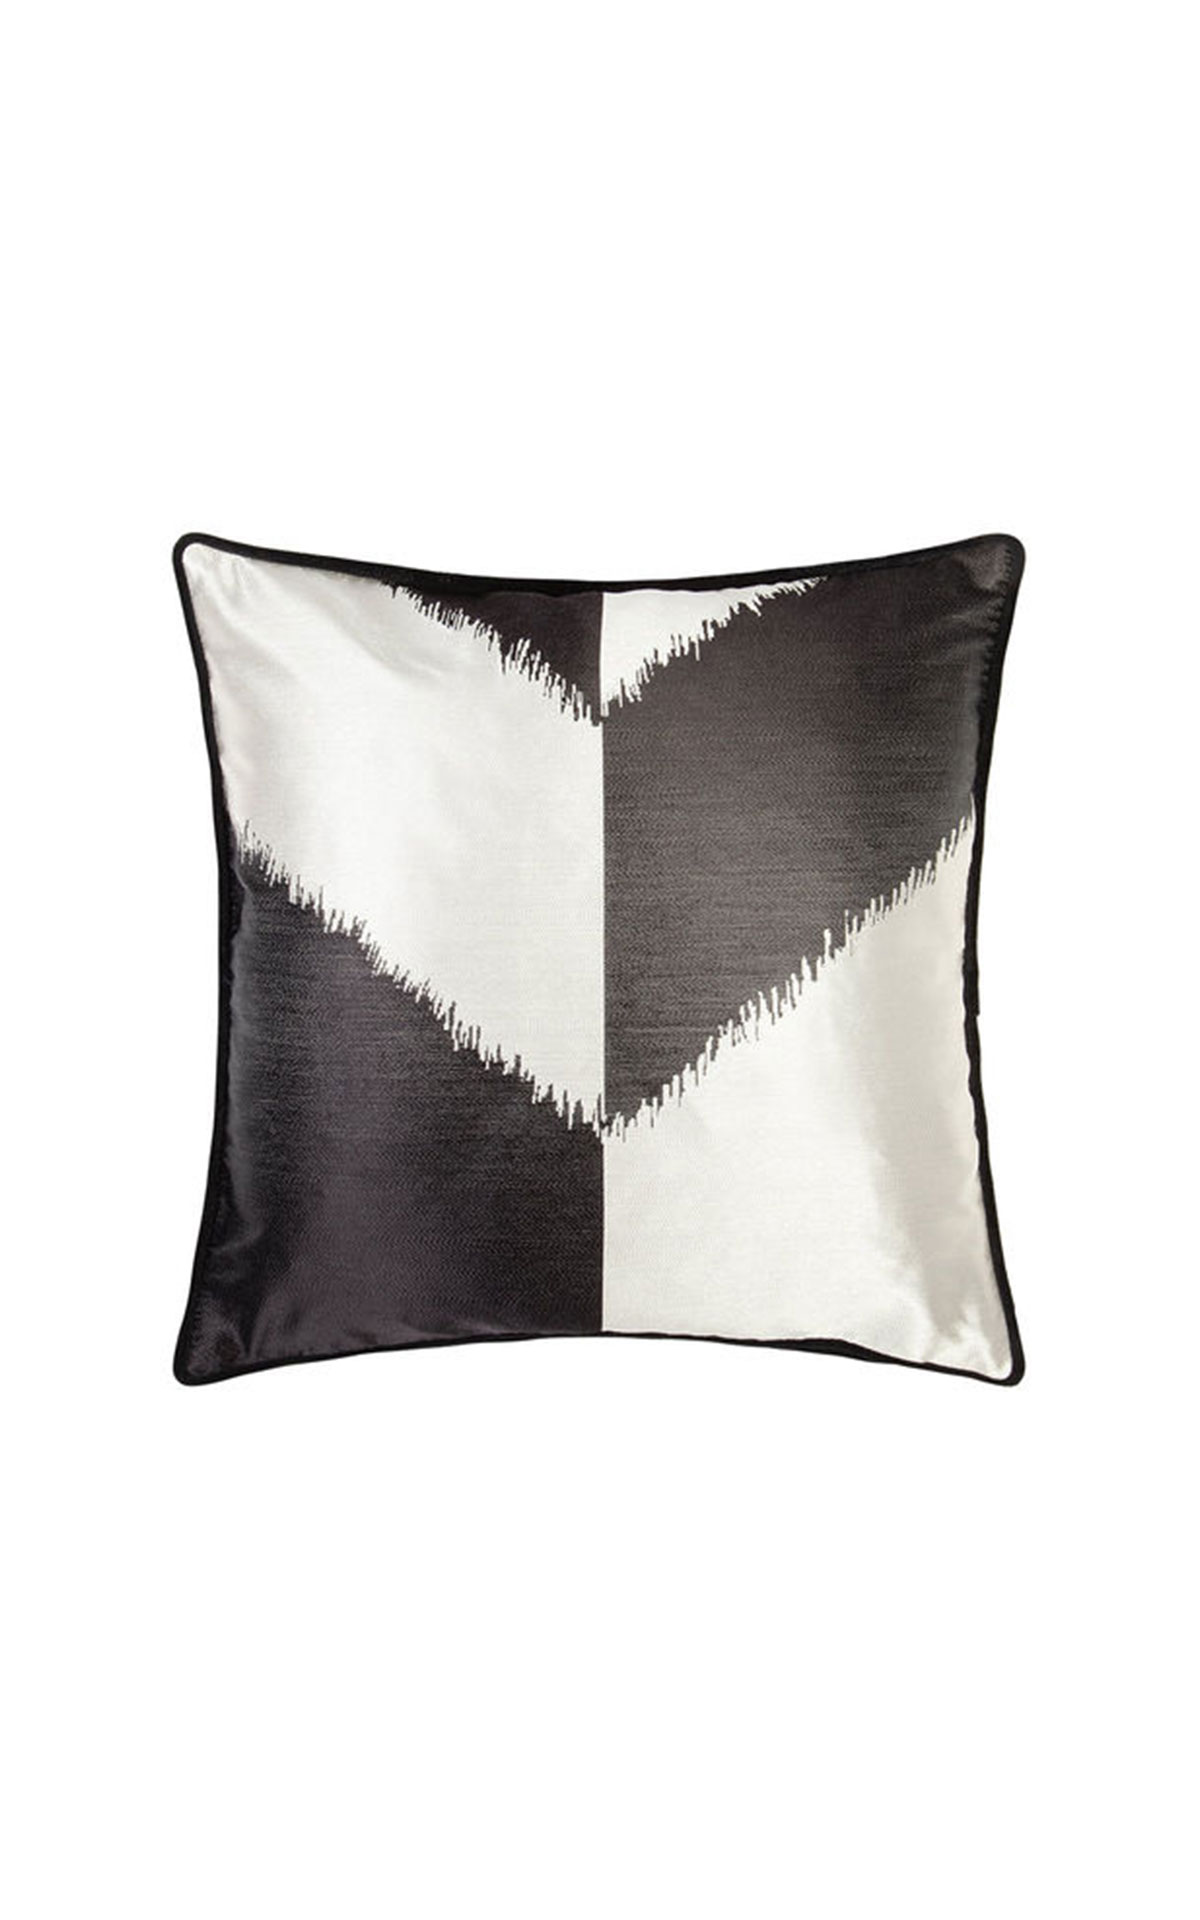 Soho Home Rowan cushion from Bicester Village